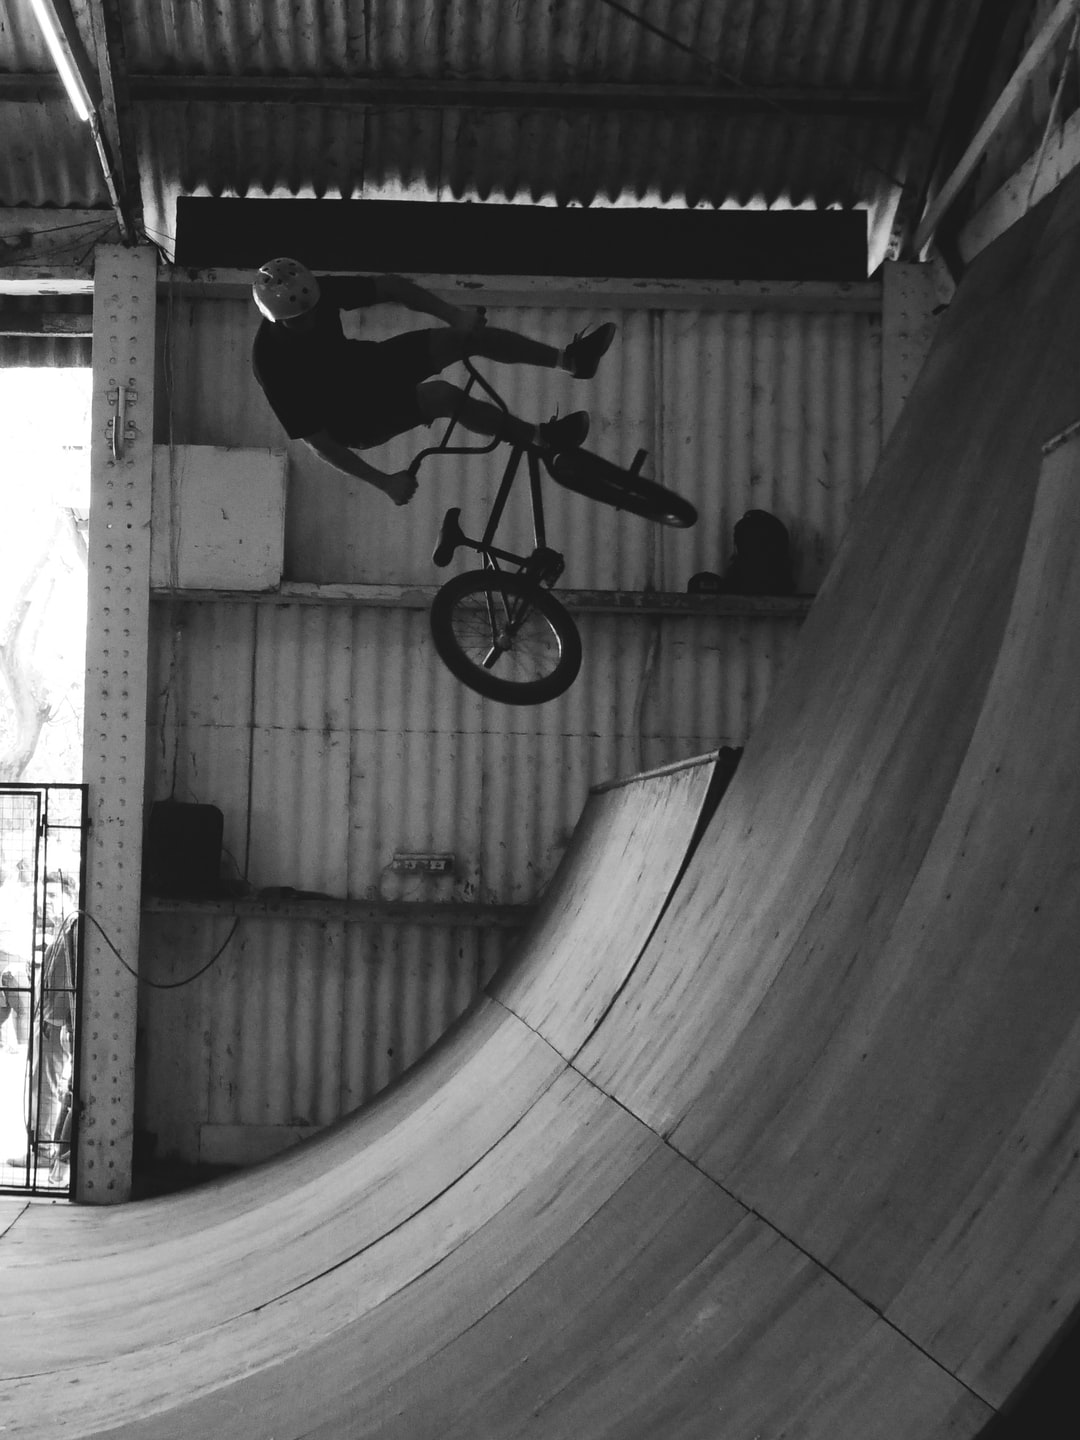 I stop in this skatepark and take some shots like this one…